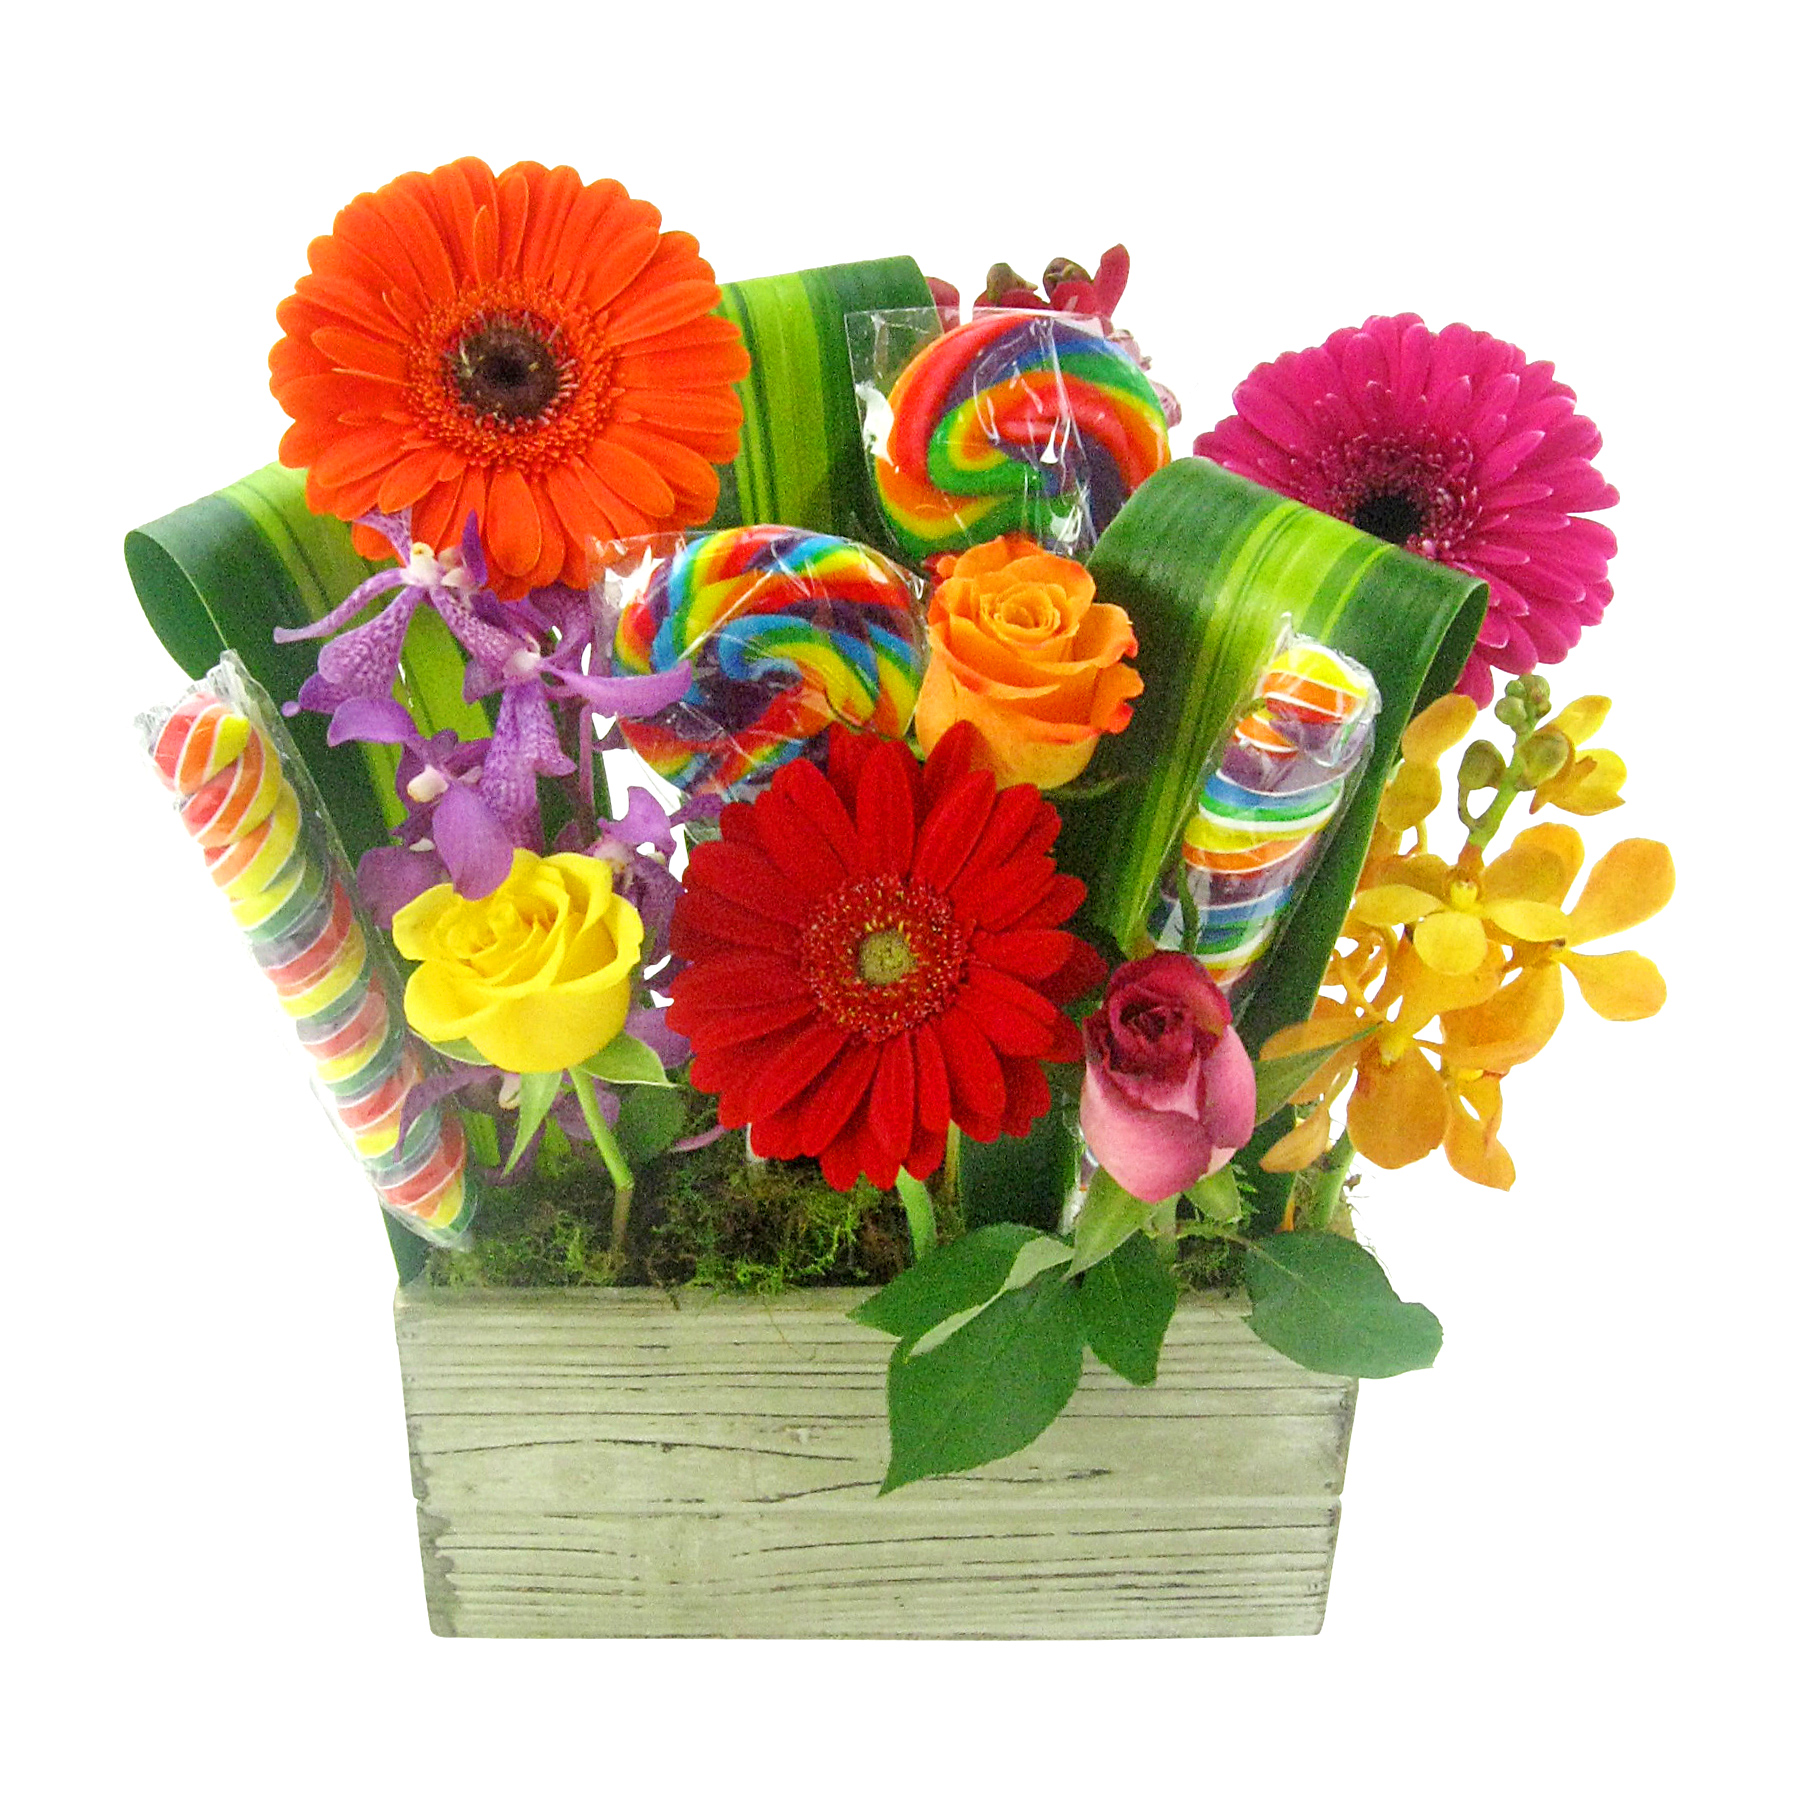 Create-A-Bouquet - Customised Flower Arrangements Picked by You